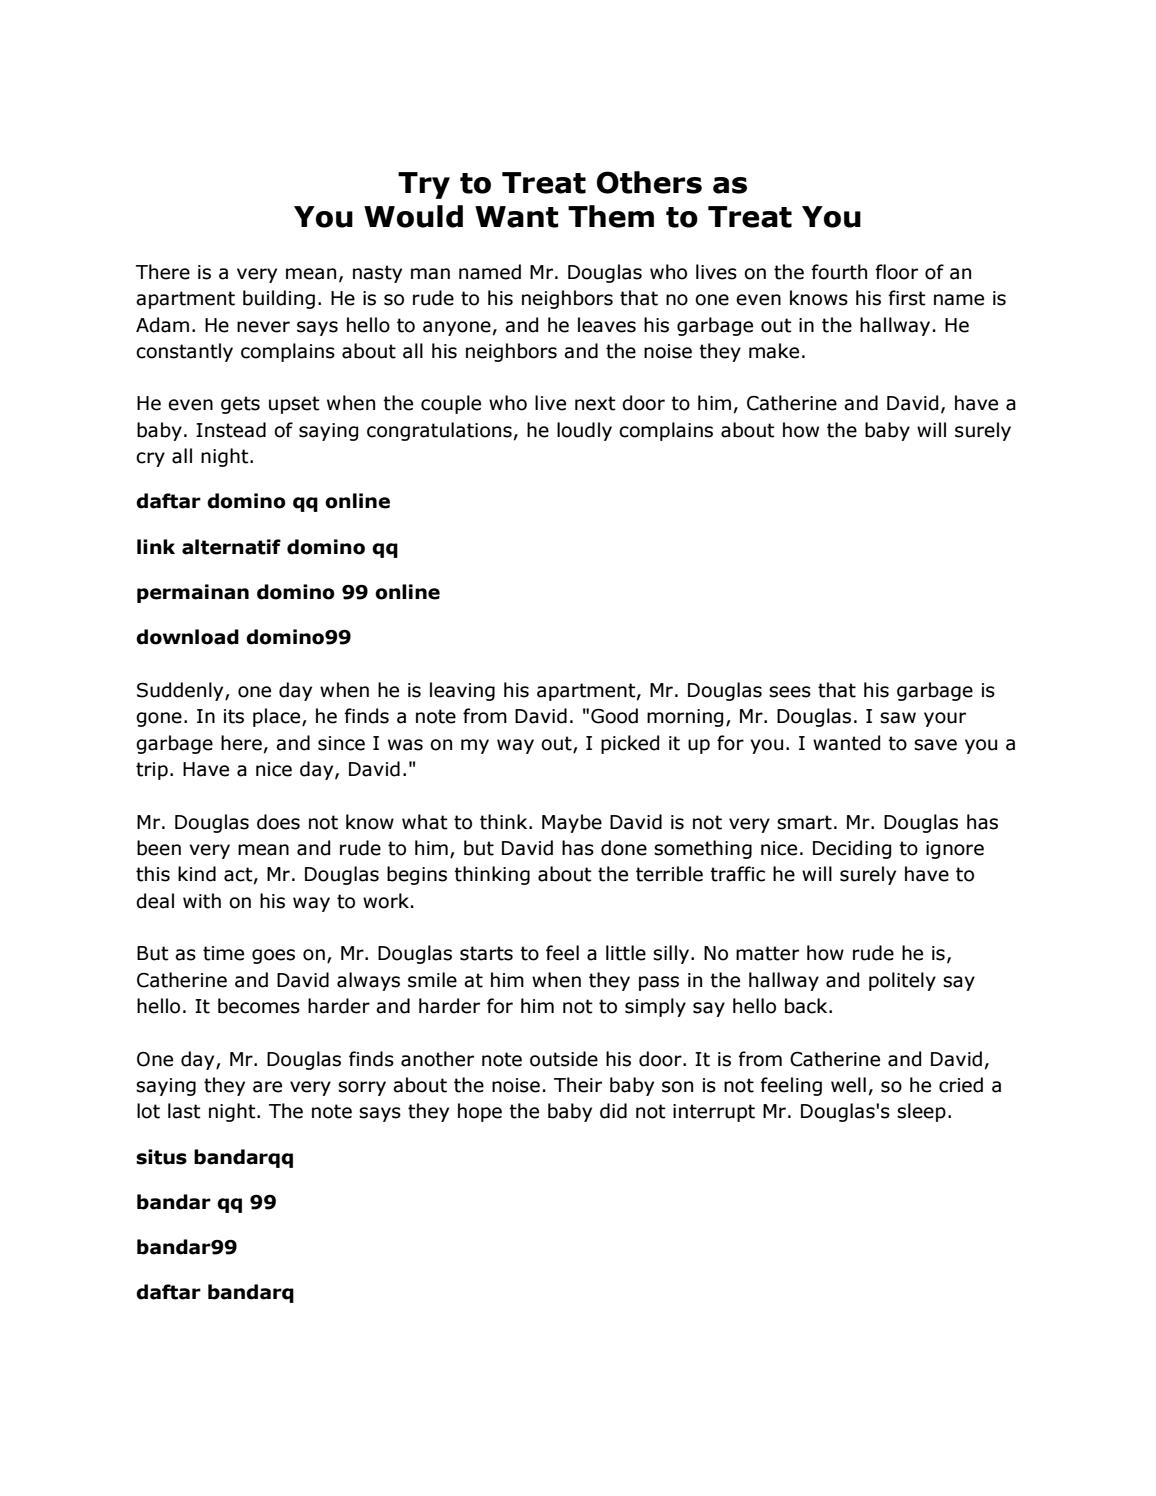 Try To Treat Others As You Would Want Them To Treat You By Qqbandaronline Issuu